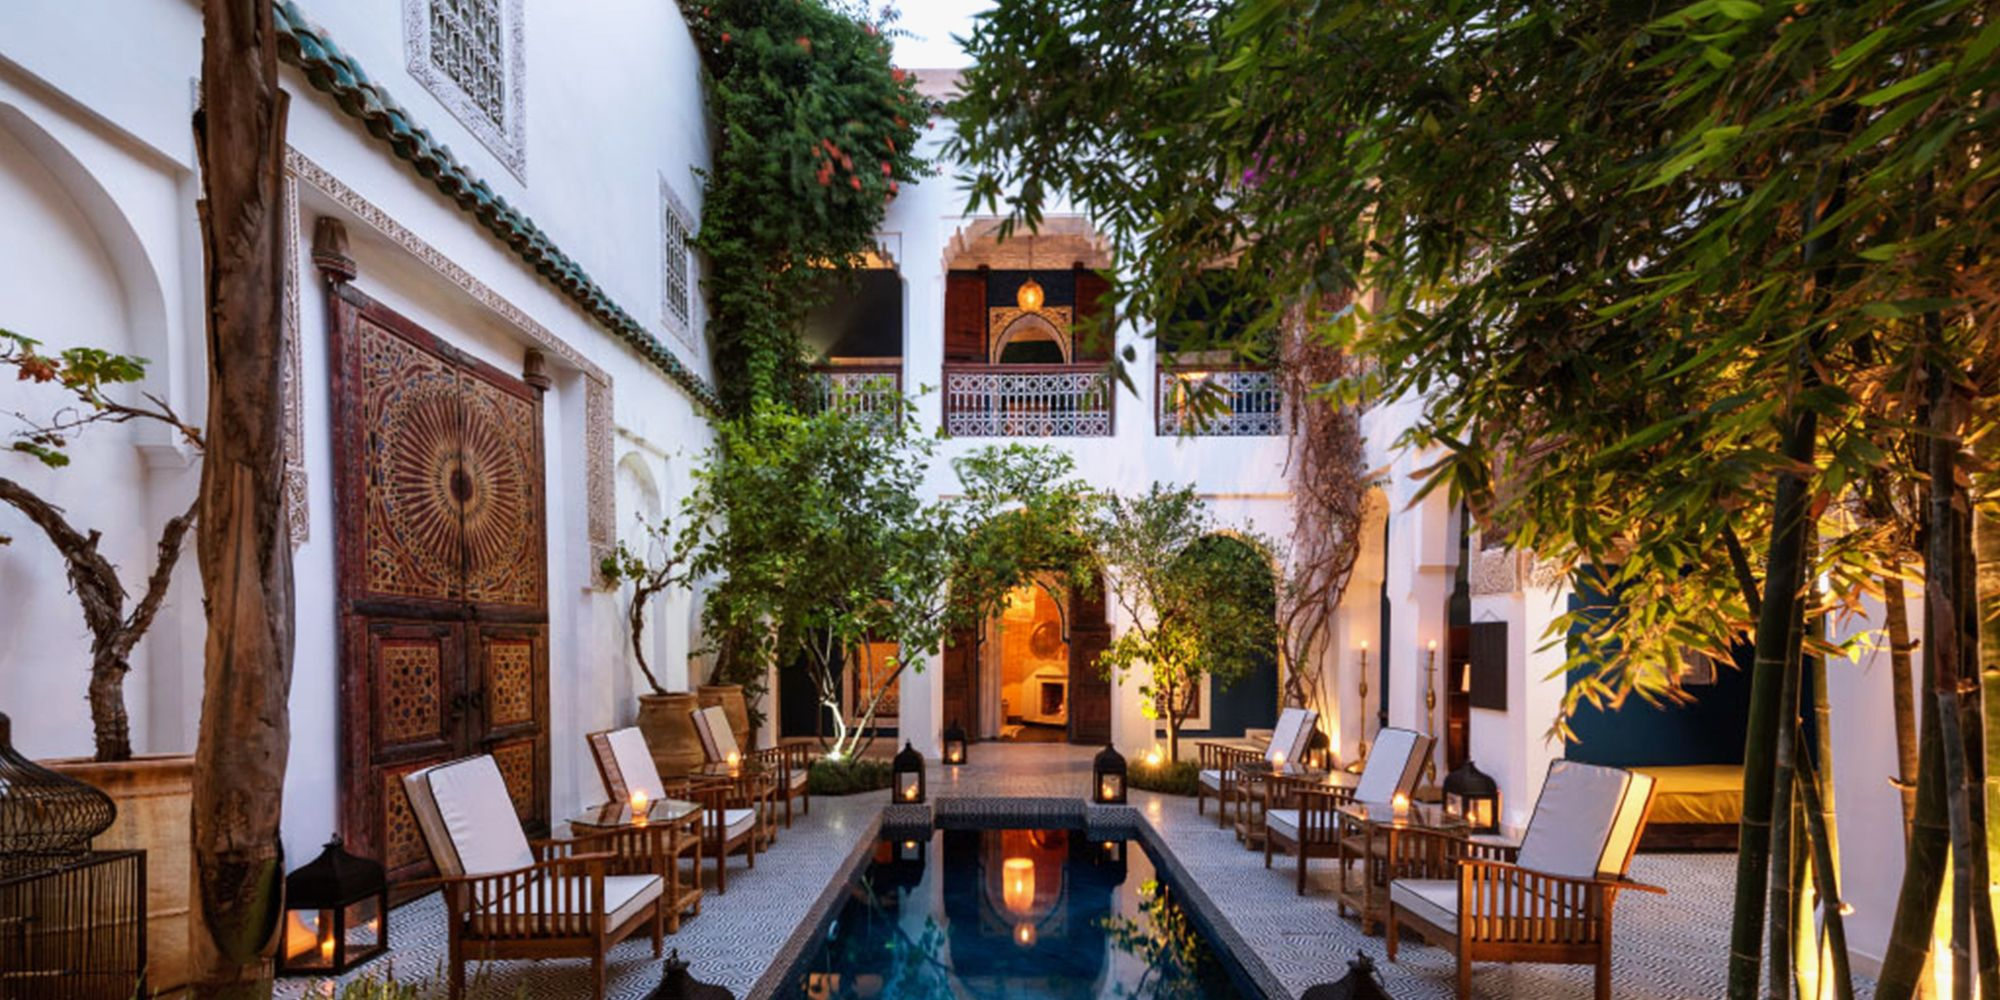 Have an Authentic Moroccan Experience at a Riad in Marrakech